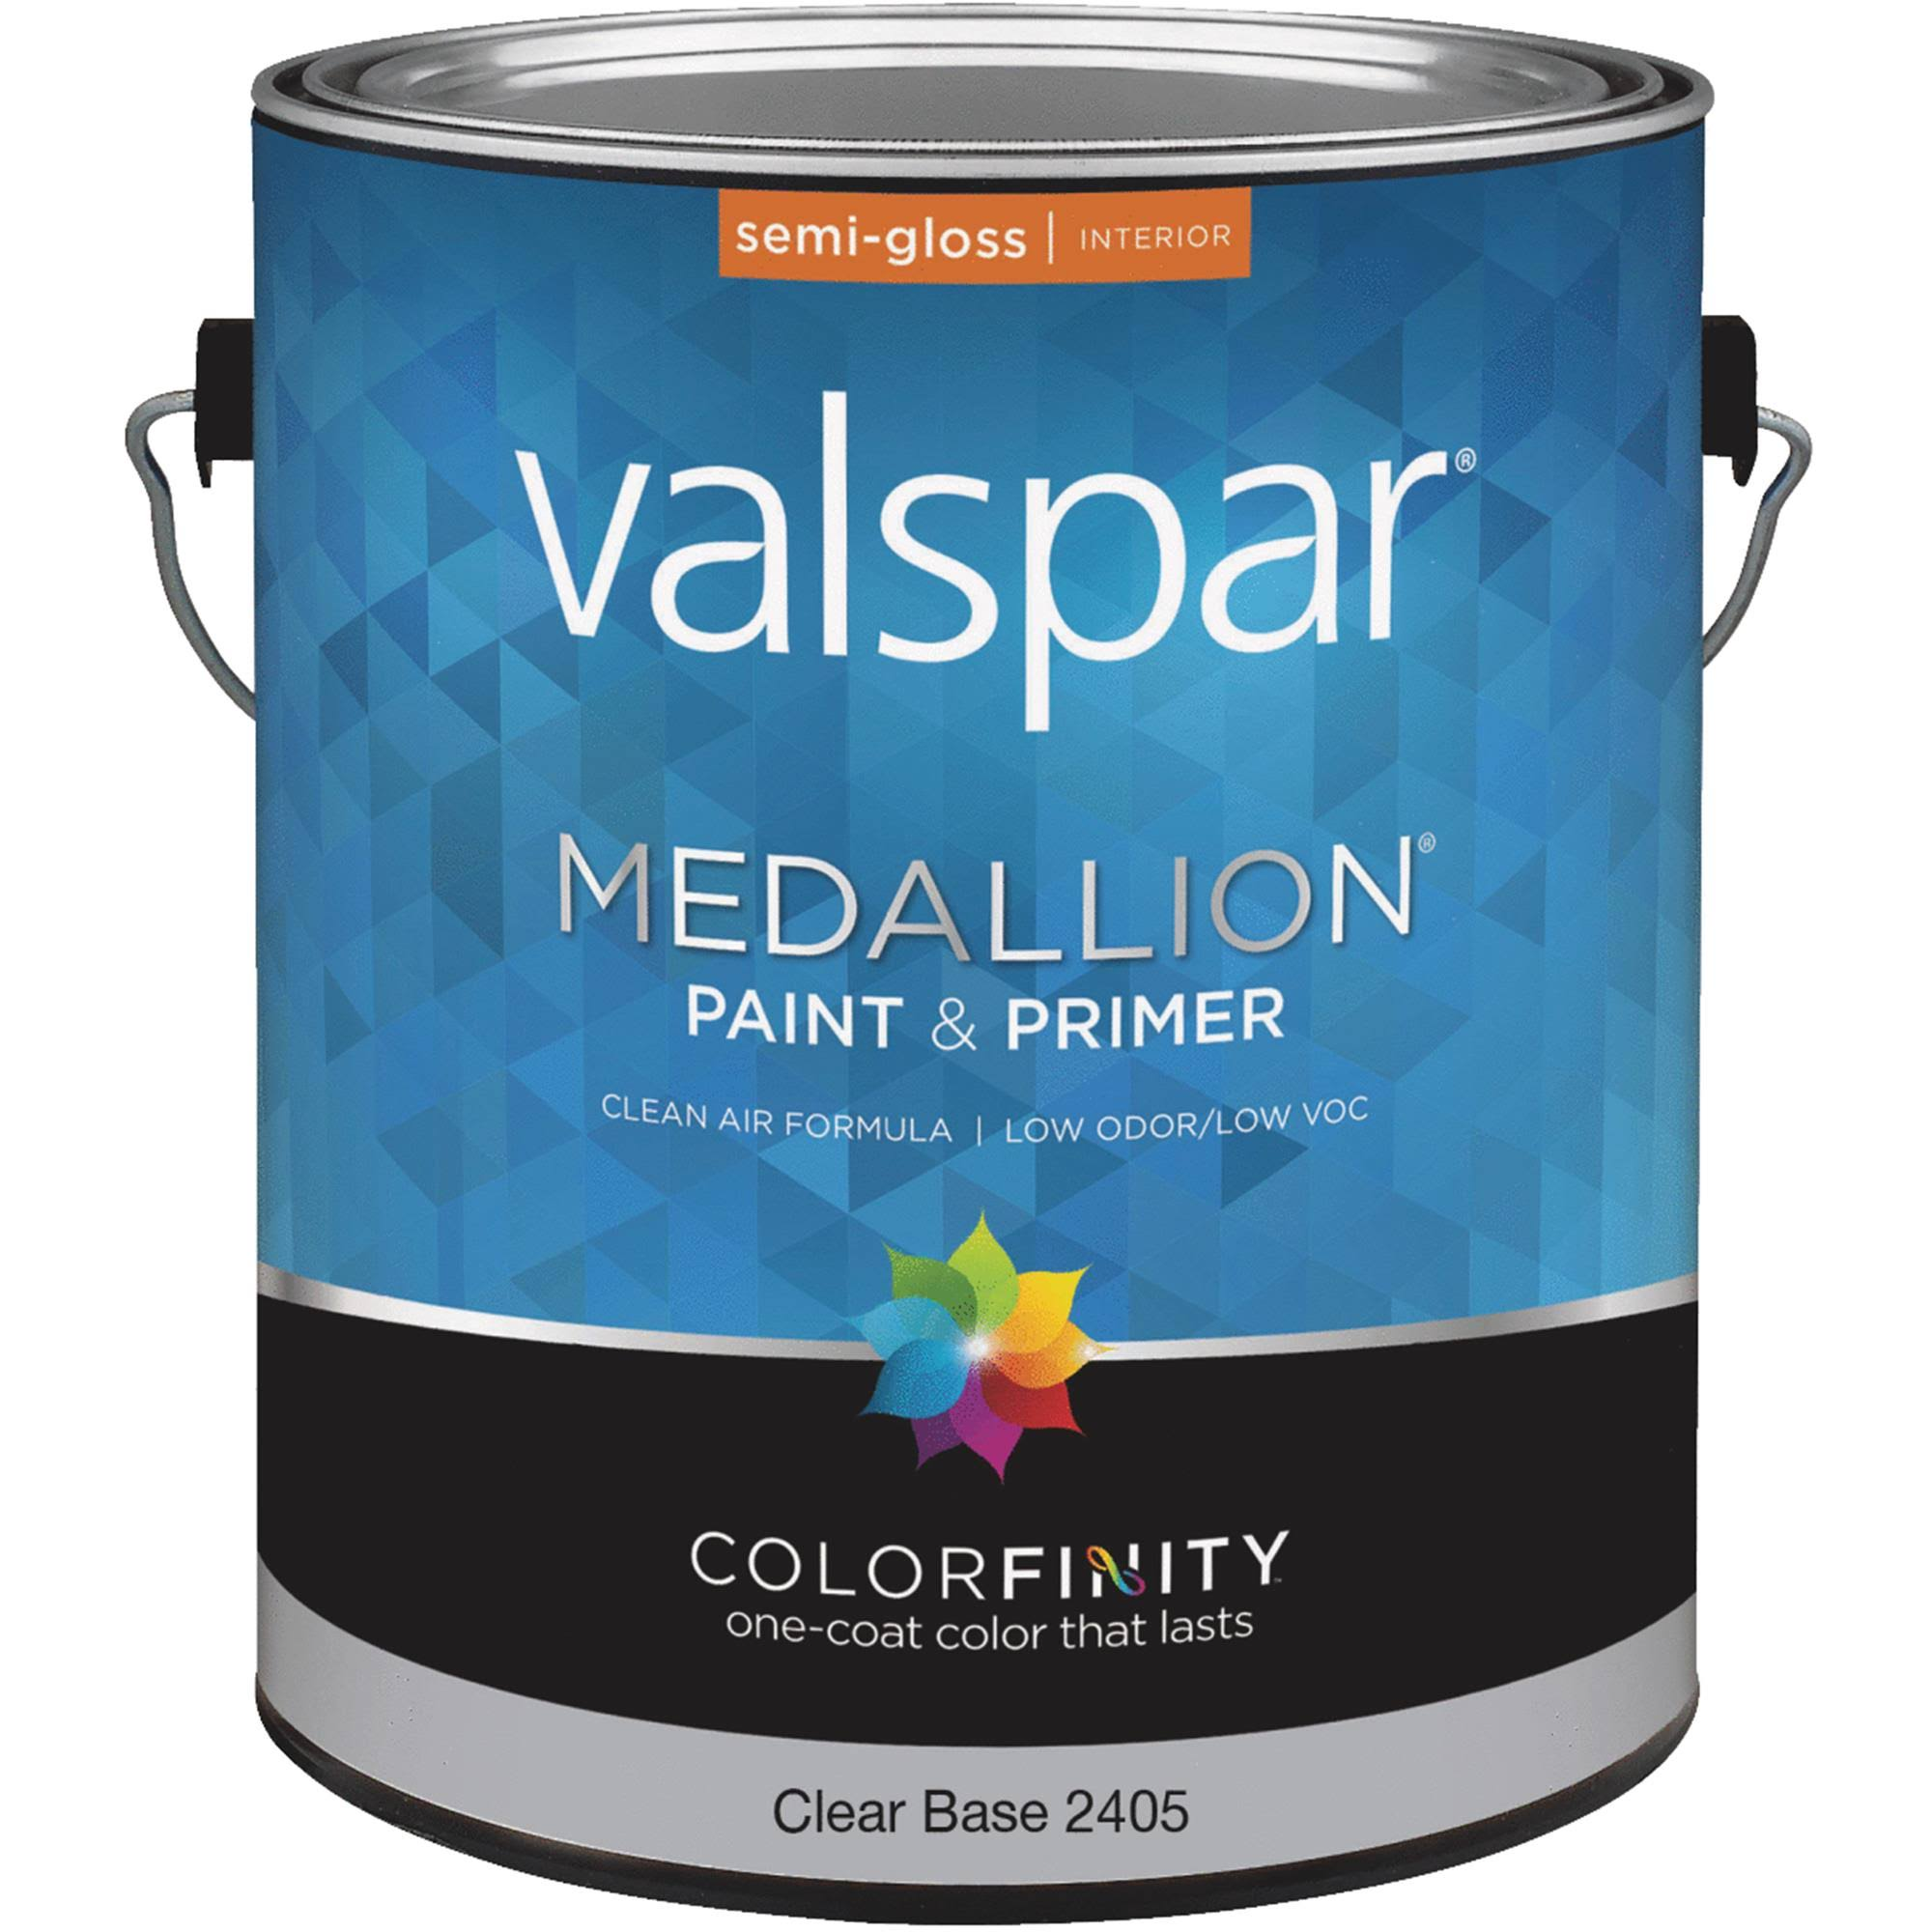 Valspar Medallion Paint & Primer